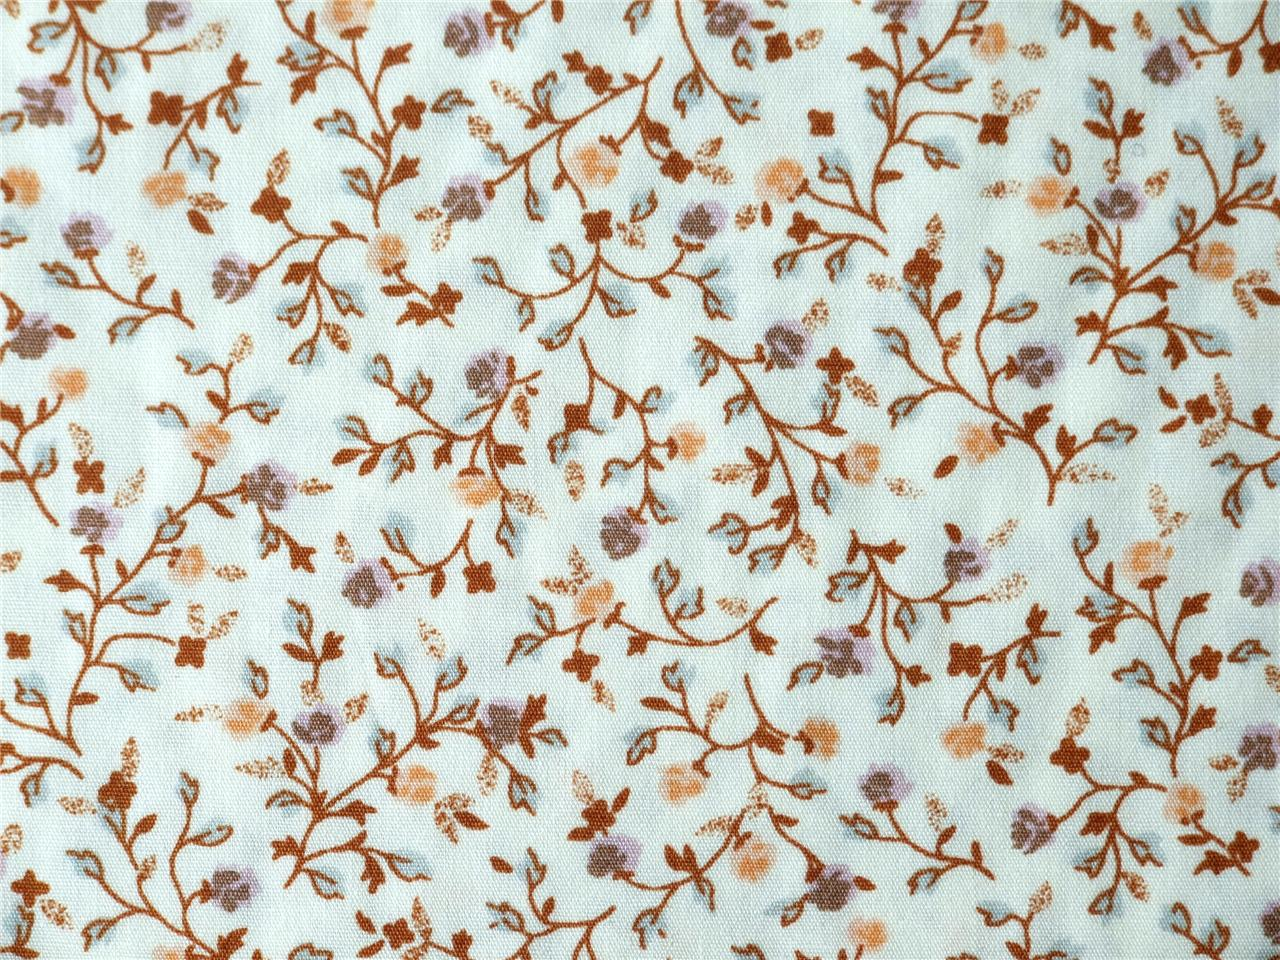 Beige-Brown-Tan-Cream-floral-stripes-spot-Vintage-100-COTTON-FABRIC-dress-craft